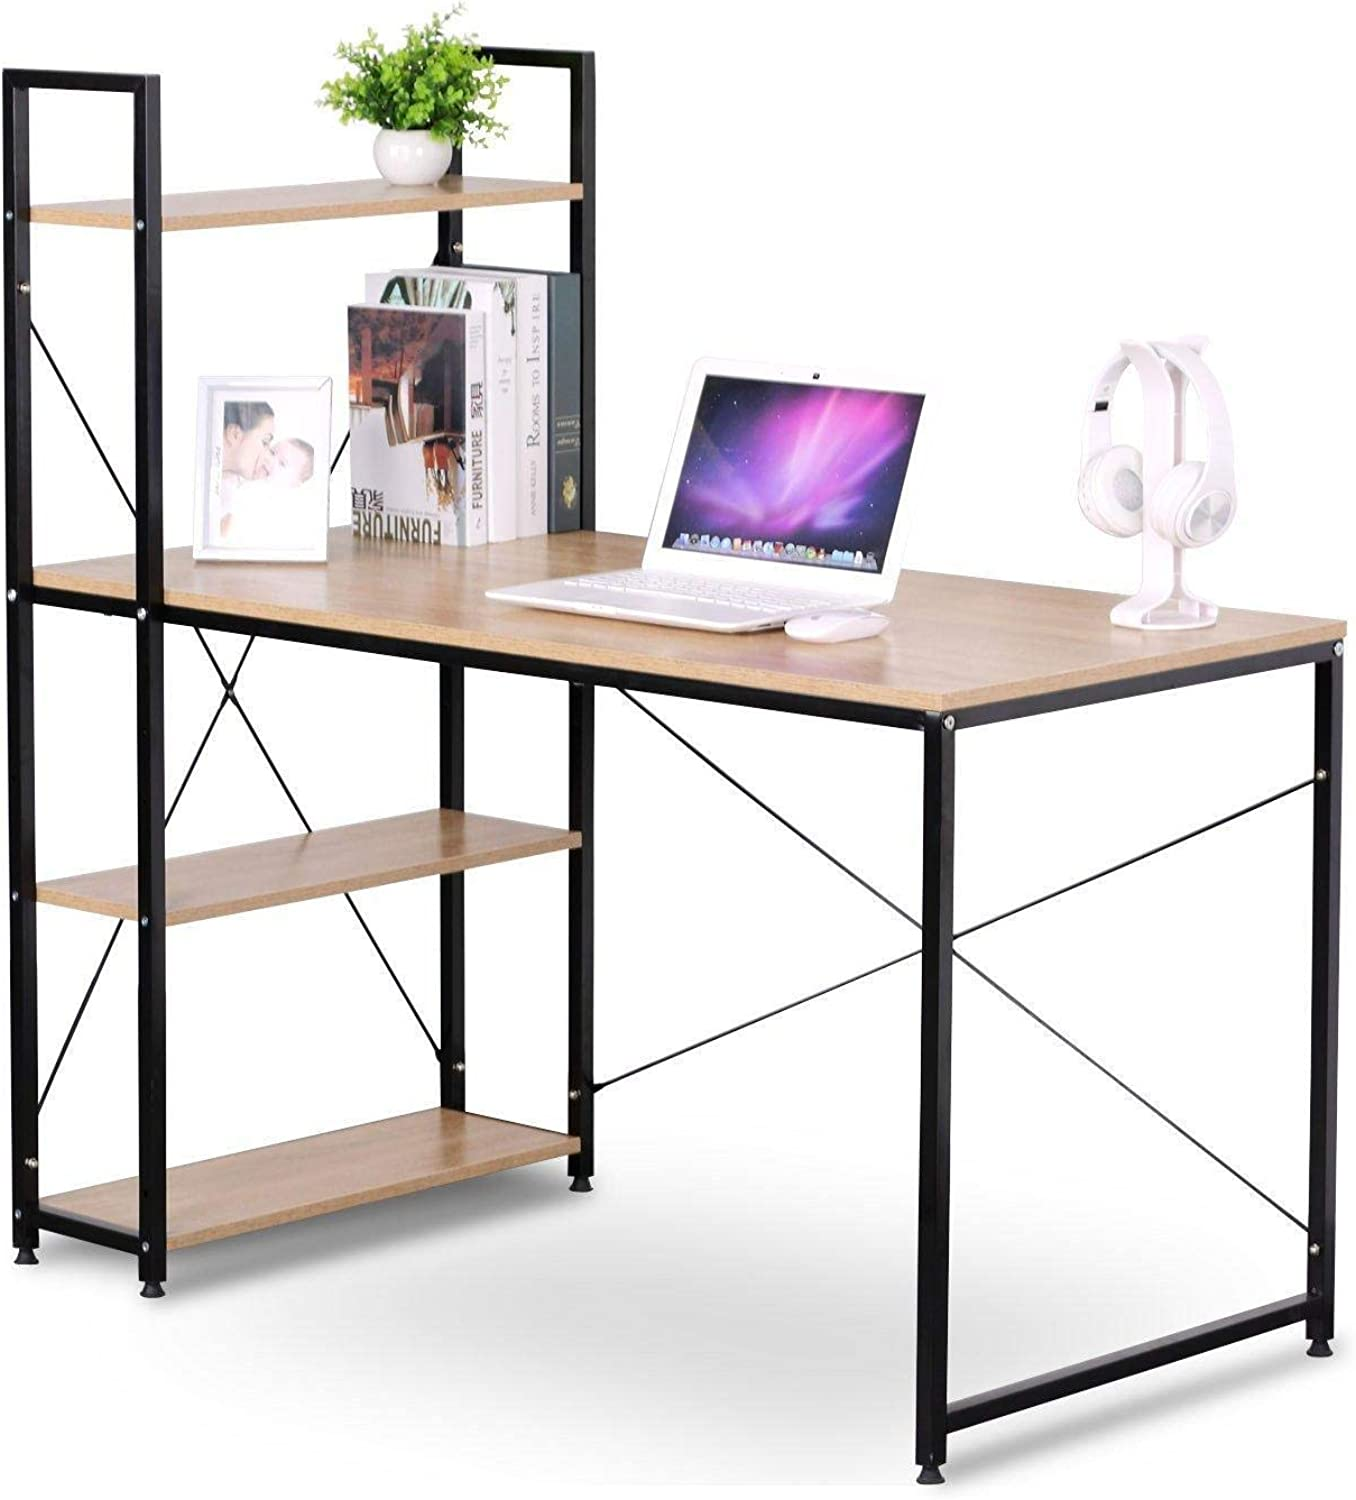 Moustache Wood Writing Corner Desk Reading Table Workstation 4-Tier Side Storage Shelves Bookshelves for Computer Home Office School Study